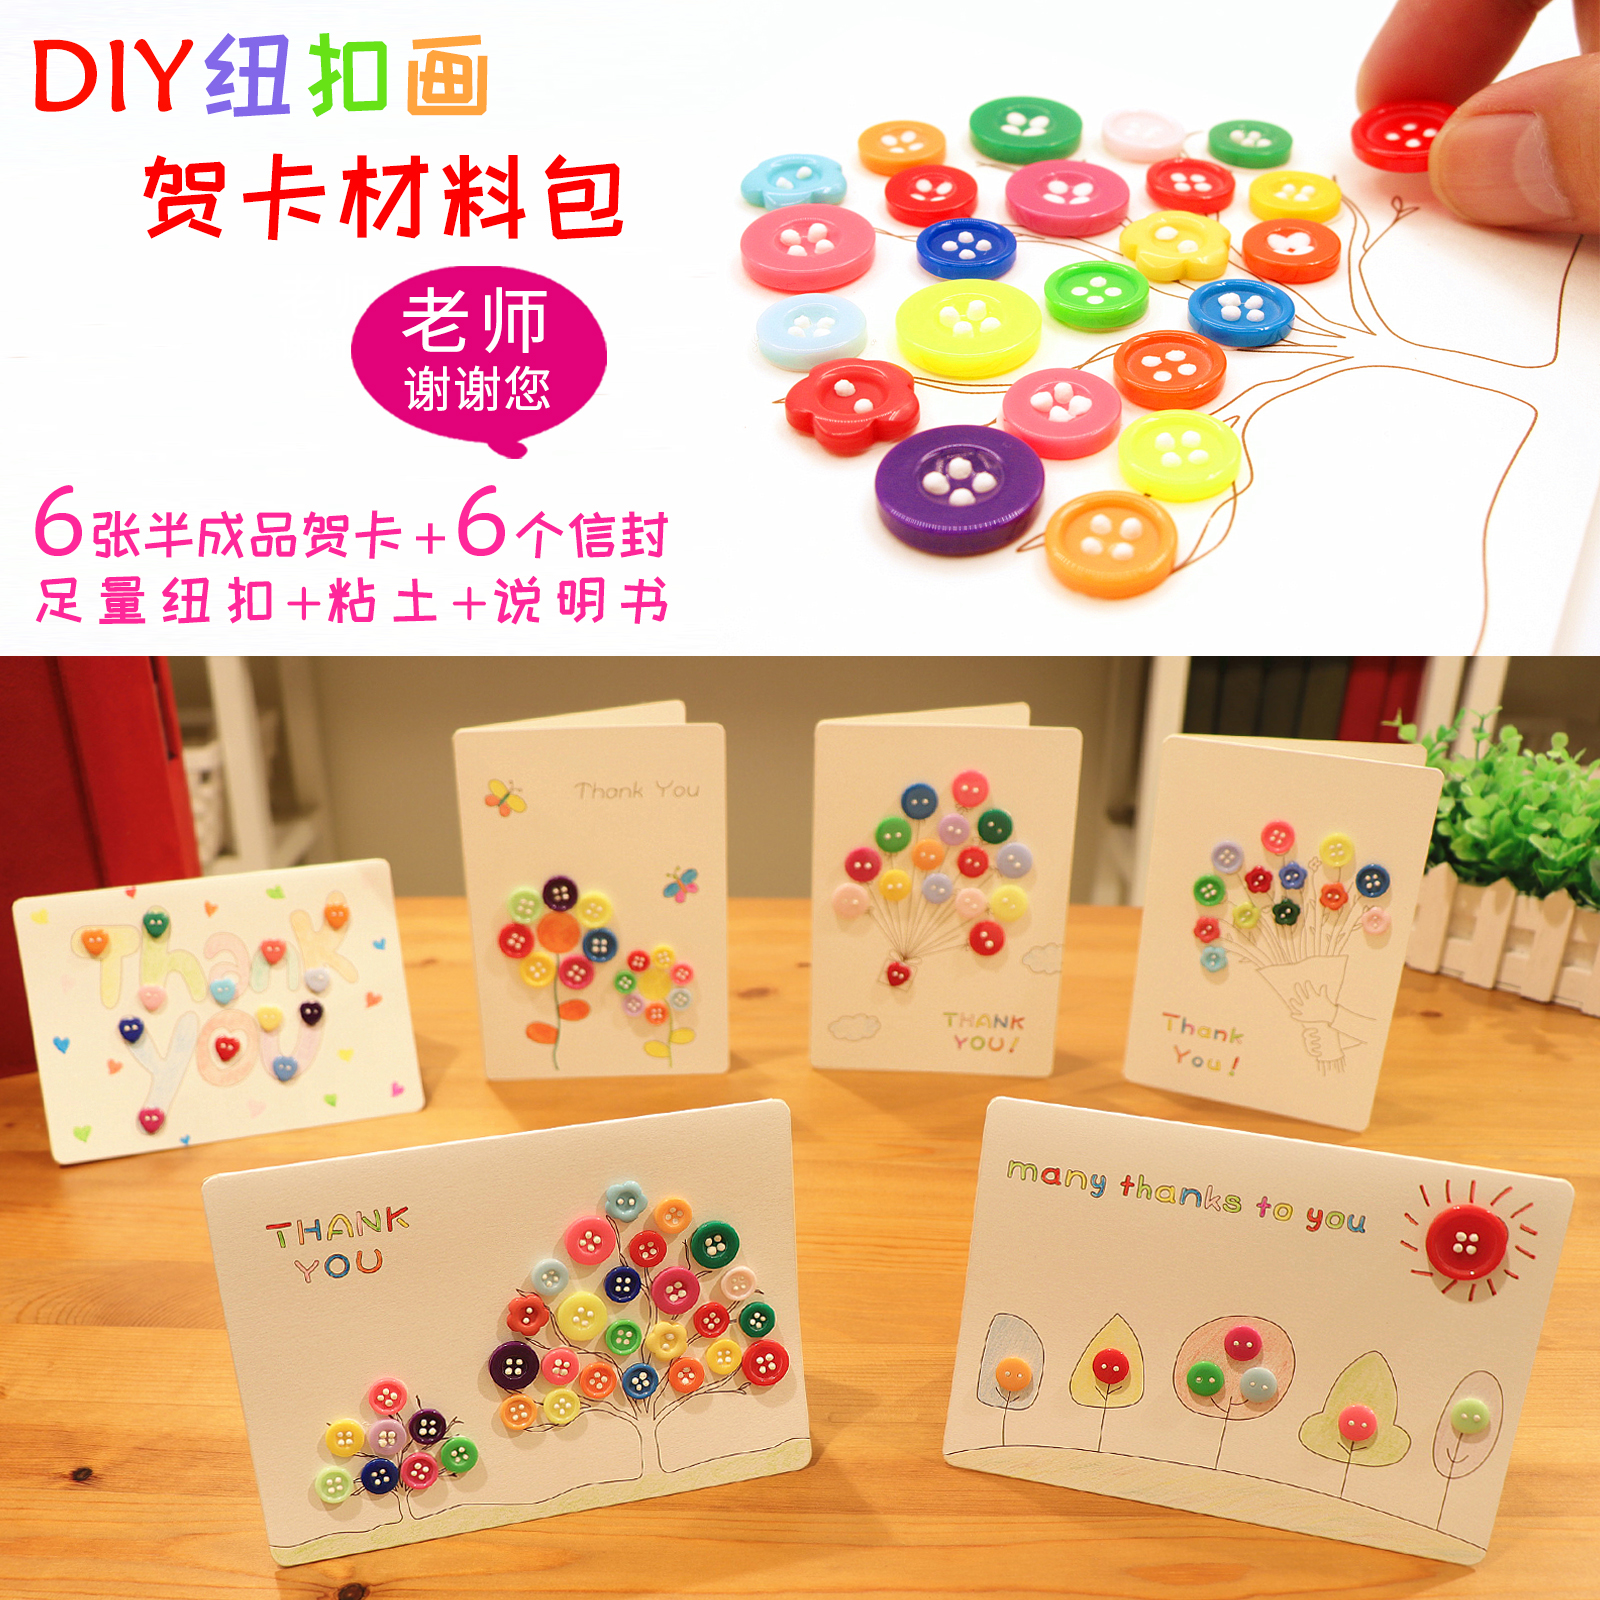 Diy Thanks To The Greeting Card Piece Handmade Material Package